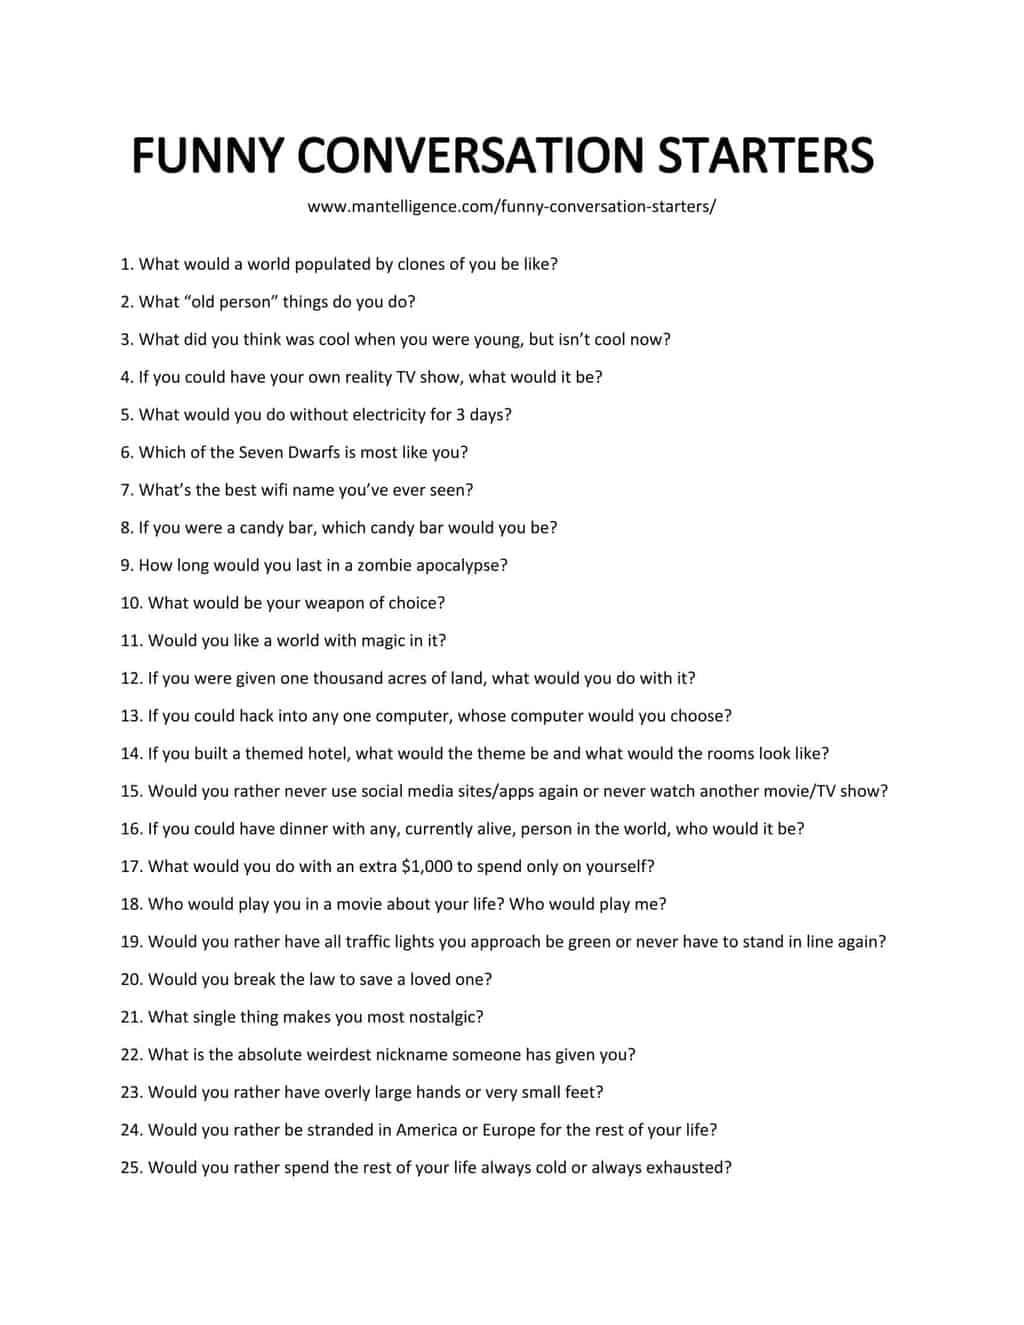 List of Funny Conversation Starters